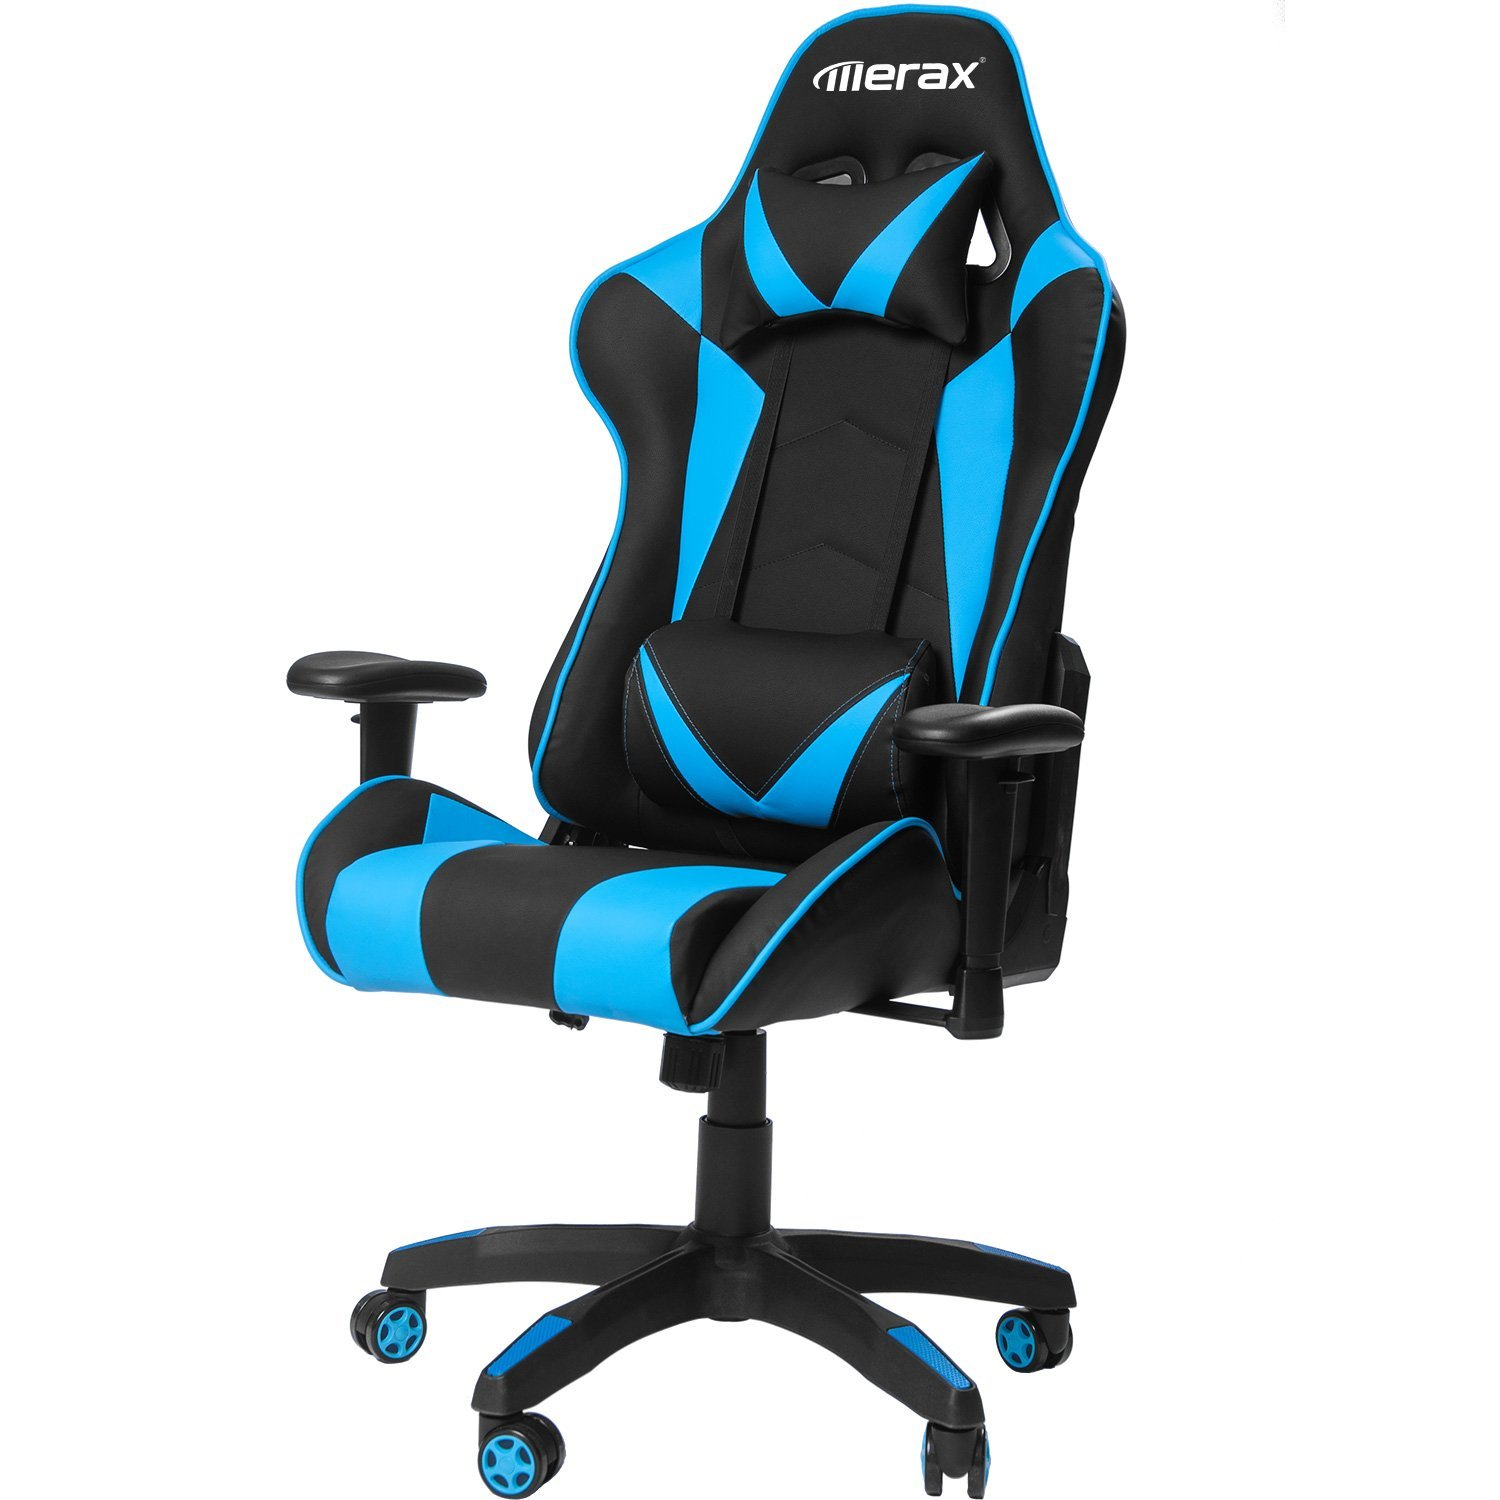 Best Cheap Gaming Chairs Merax Ergonomics Review